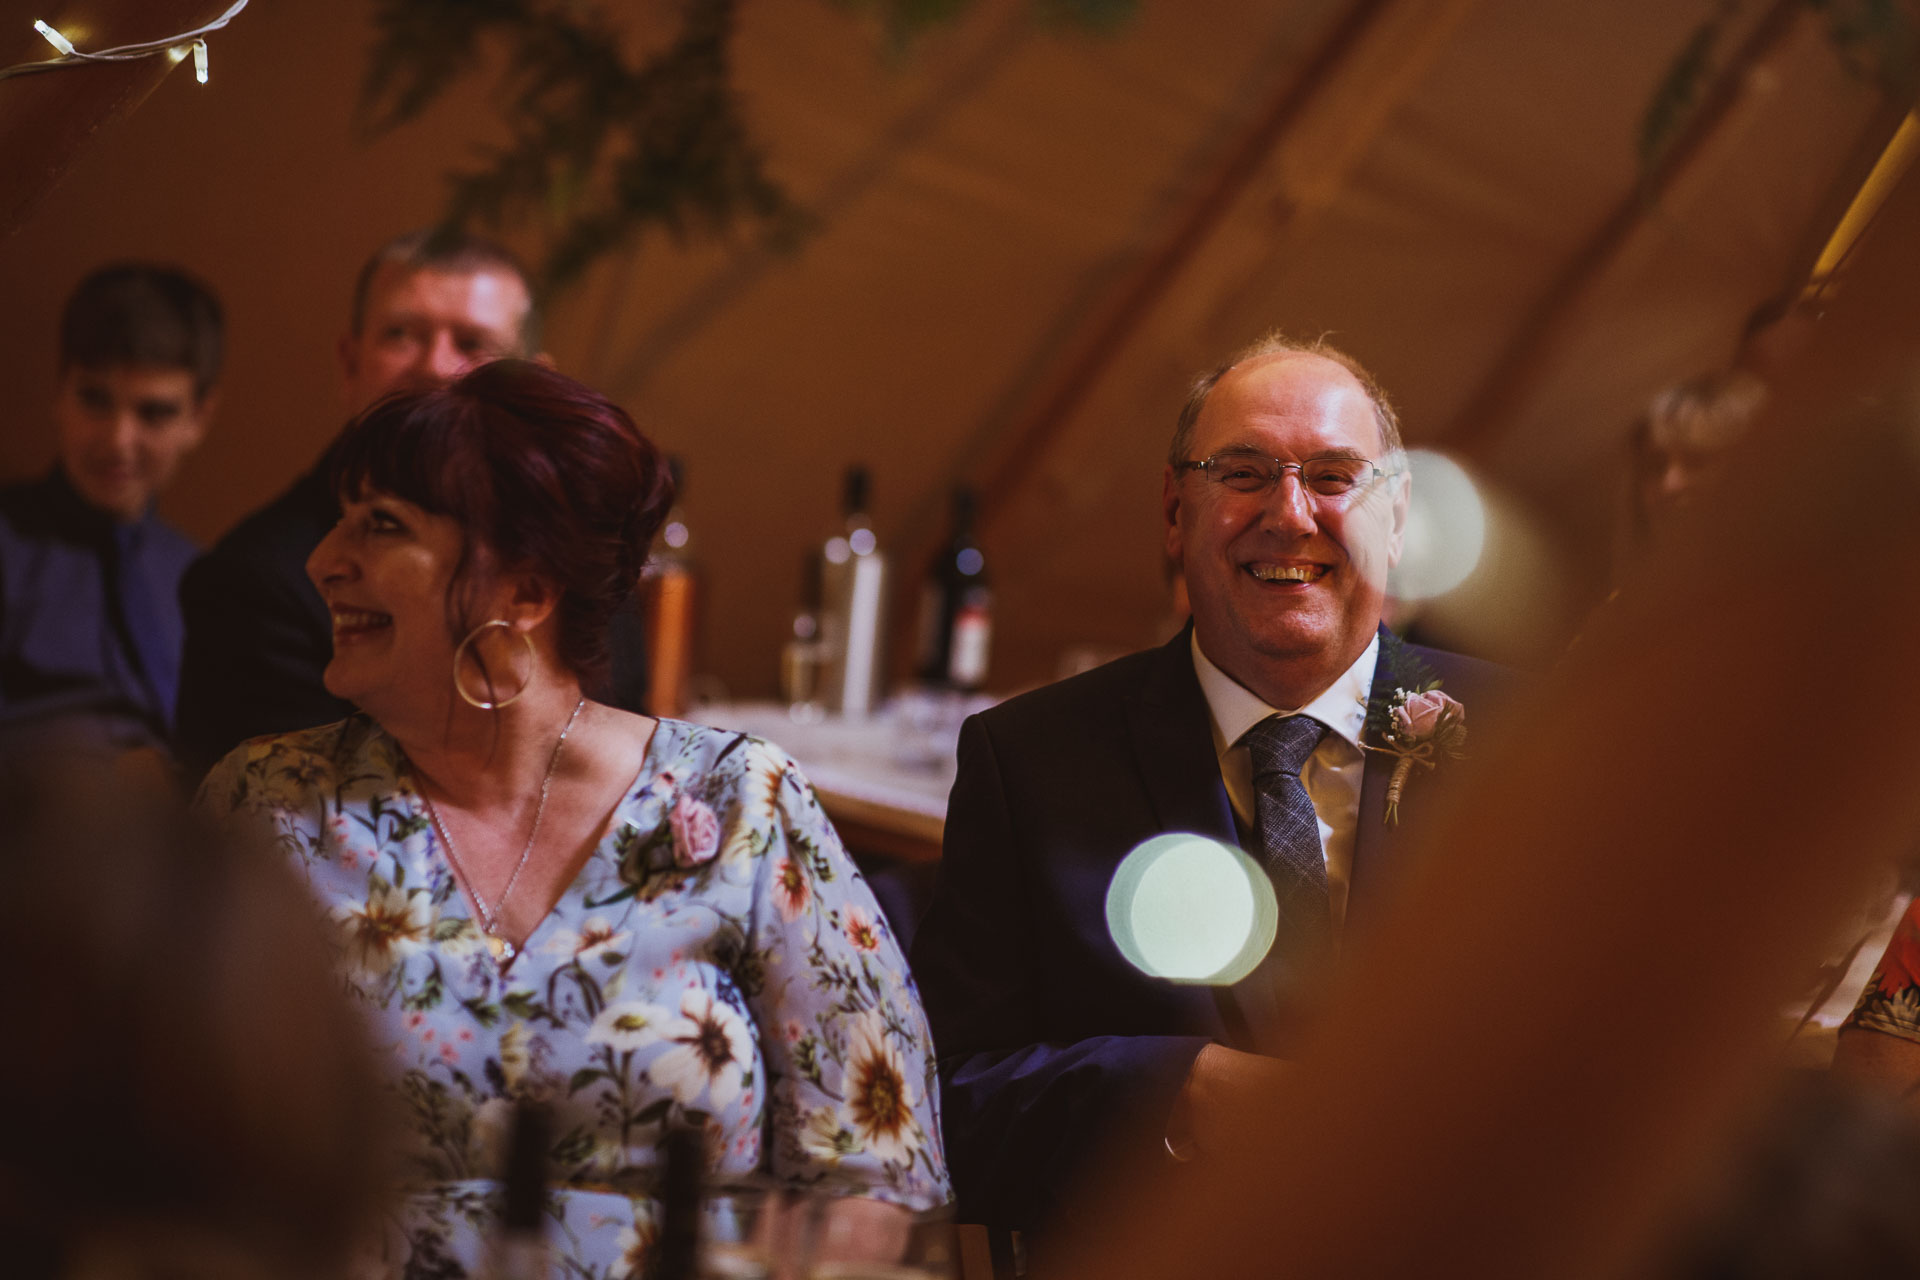 the_barn_scarborough_wedding_photographer-98.jpg